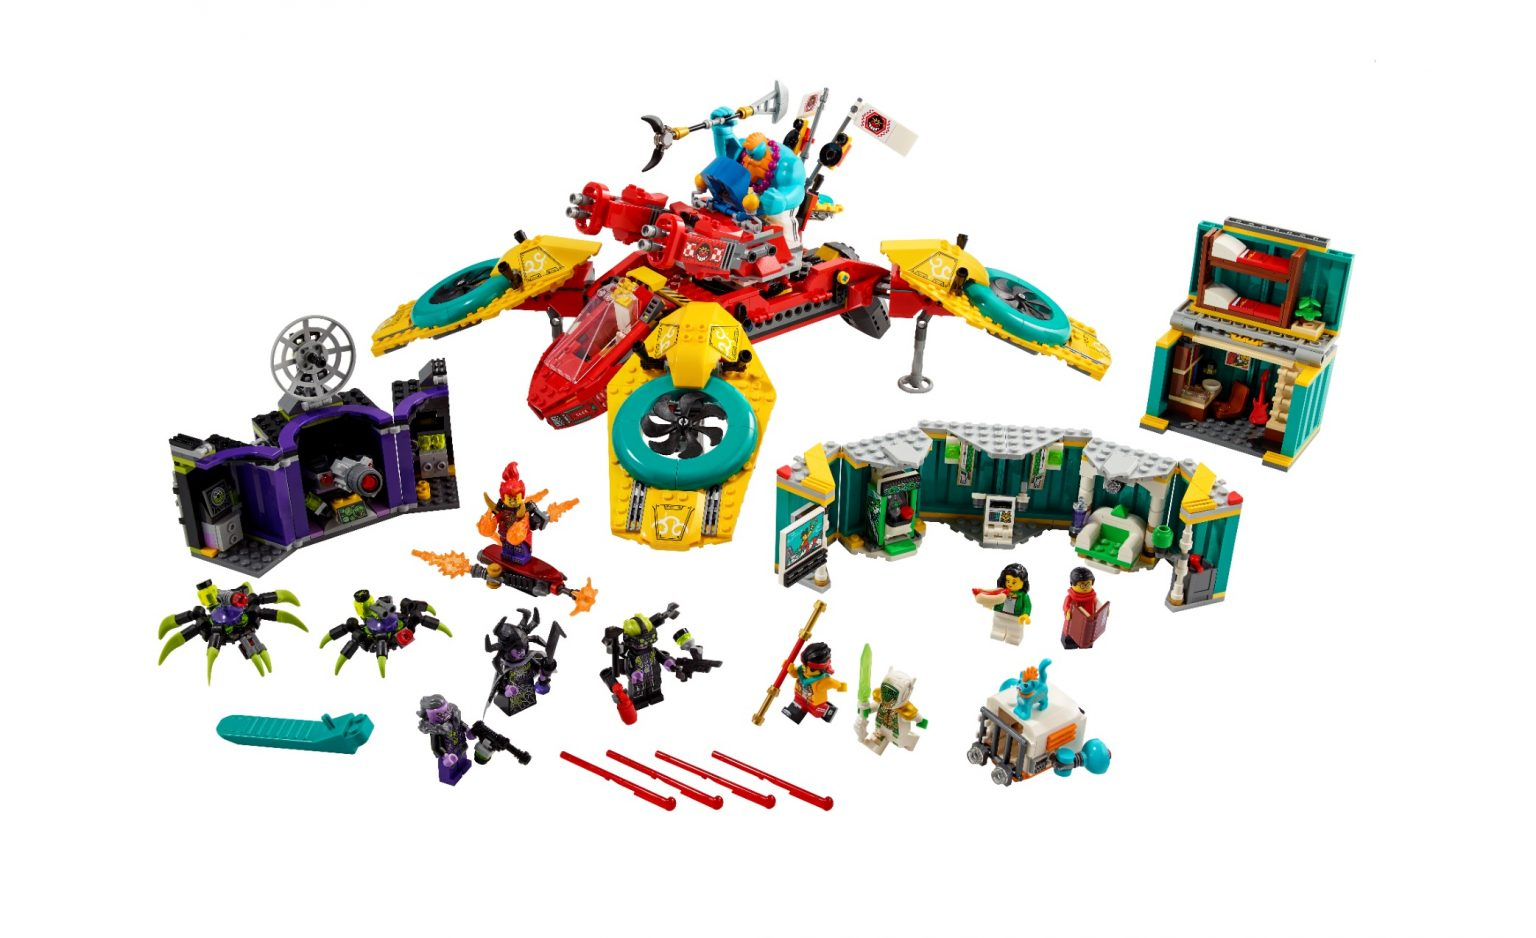 2021-March-LEGO-Monkie-Kids-Team-Quadcopter-80023-1536x938.jpg